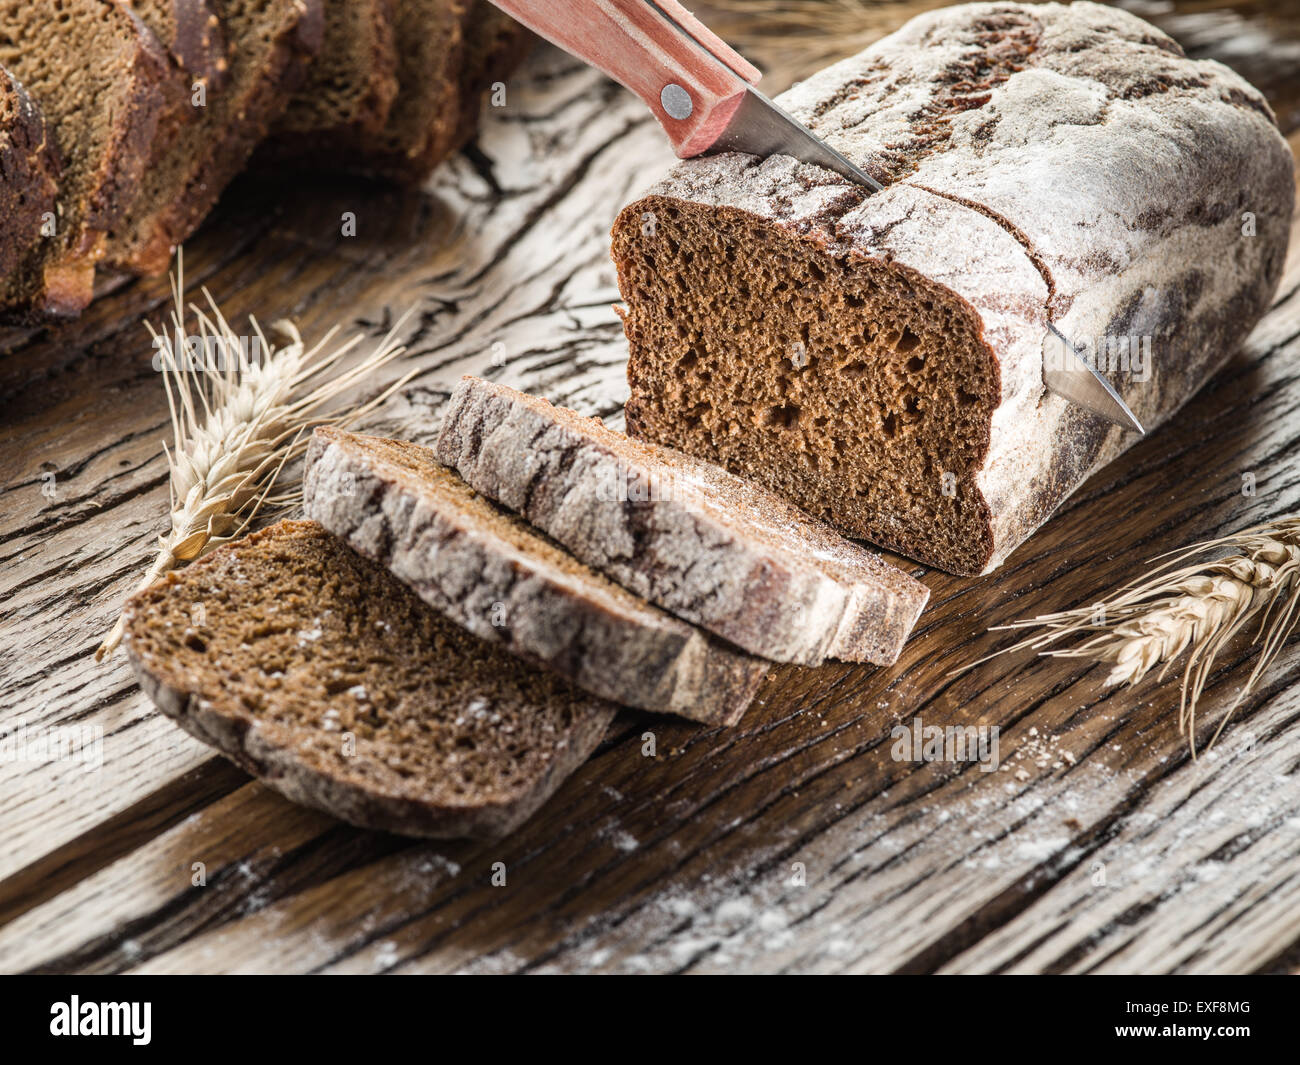 Sliced black bread on the old wooden plank. - Stock Image